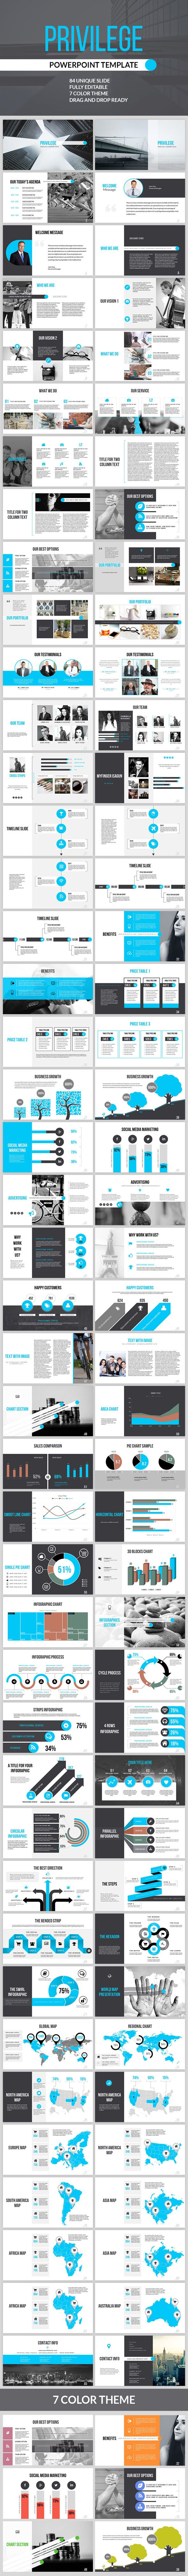 Privilege - Multipurpose PowerPoint Presentation Template. Download here: http://graphicriver.net/item/privilege-multipurpose-powerpoint-presentation/16820183?ref=ksioks